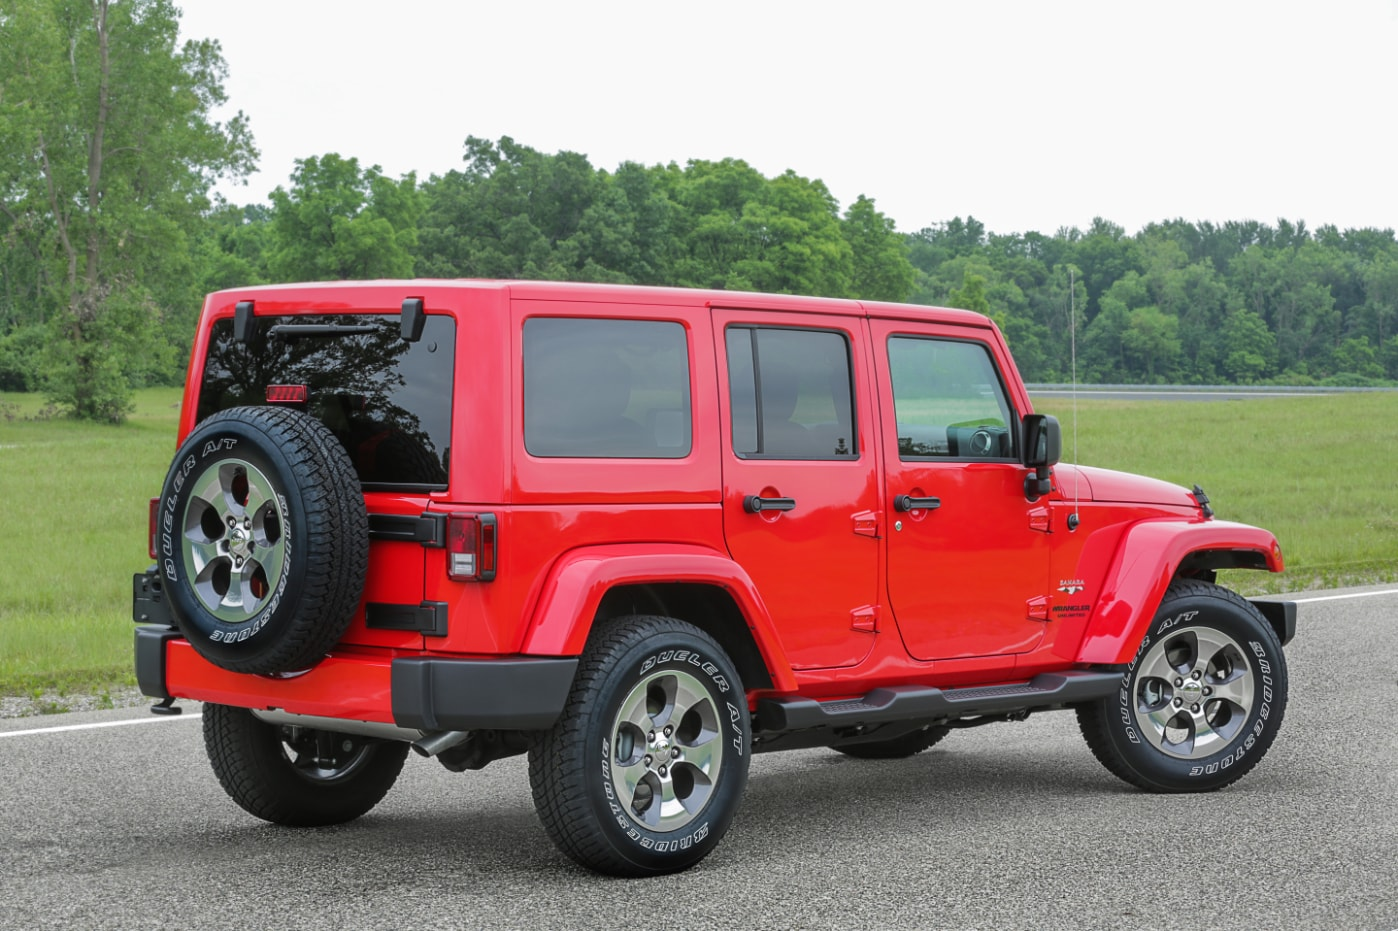 2017 Jeep Wrangler Unlimited for sale near Fayetteville/Fort Bragg